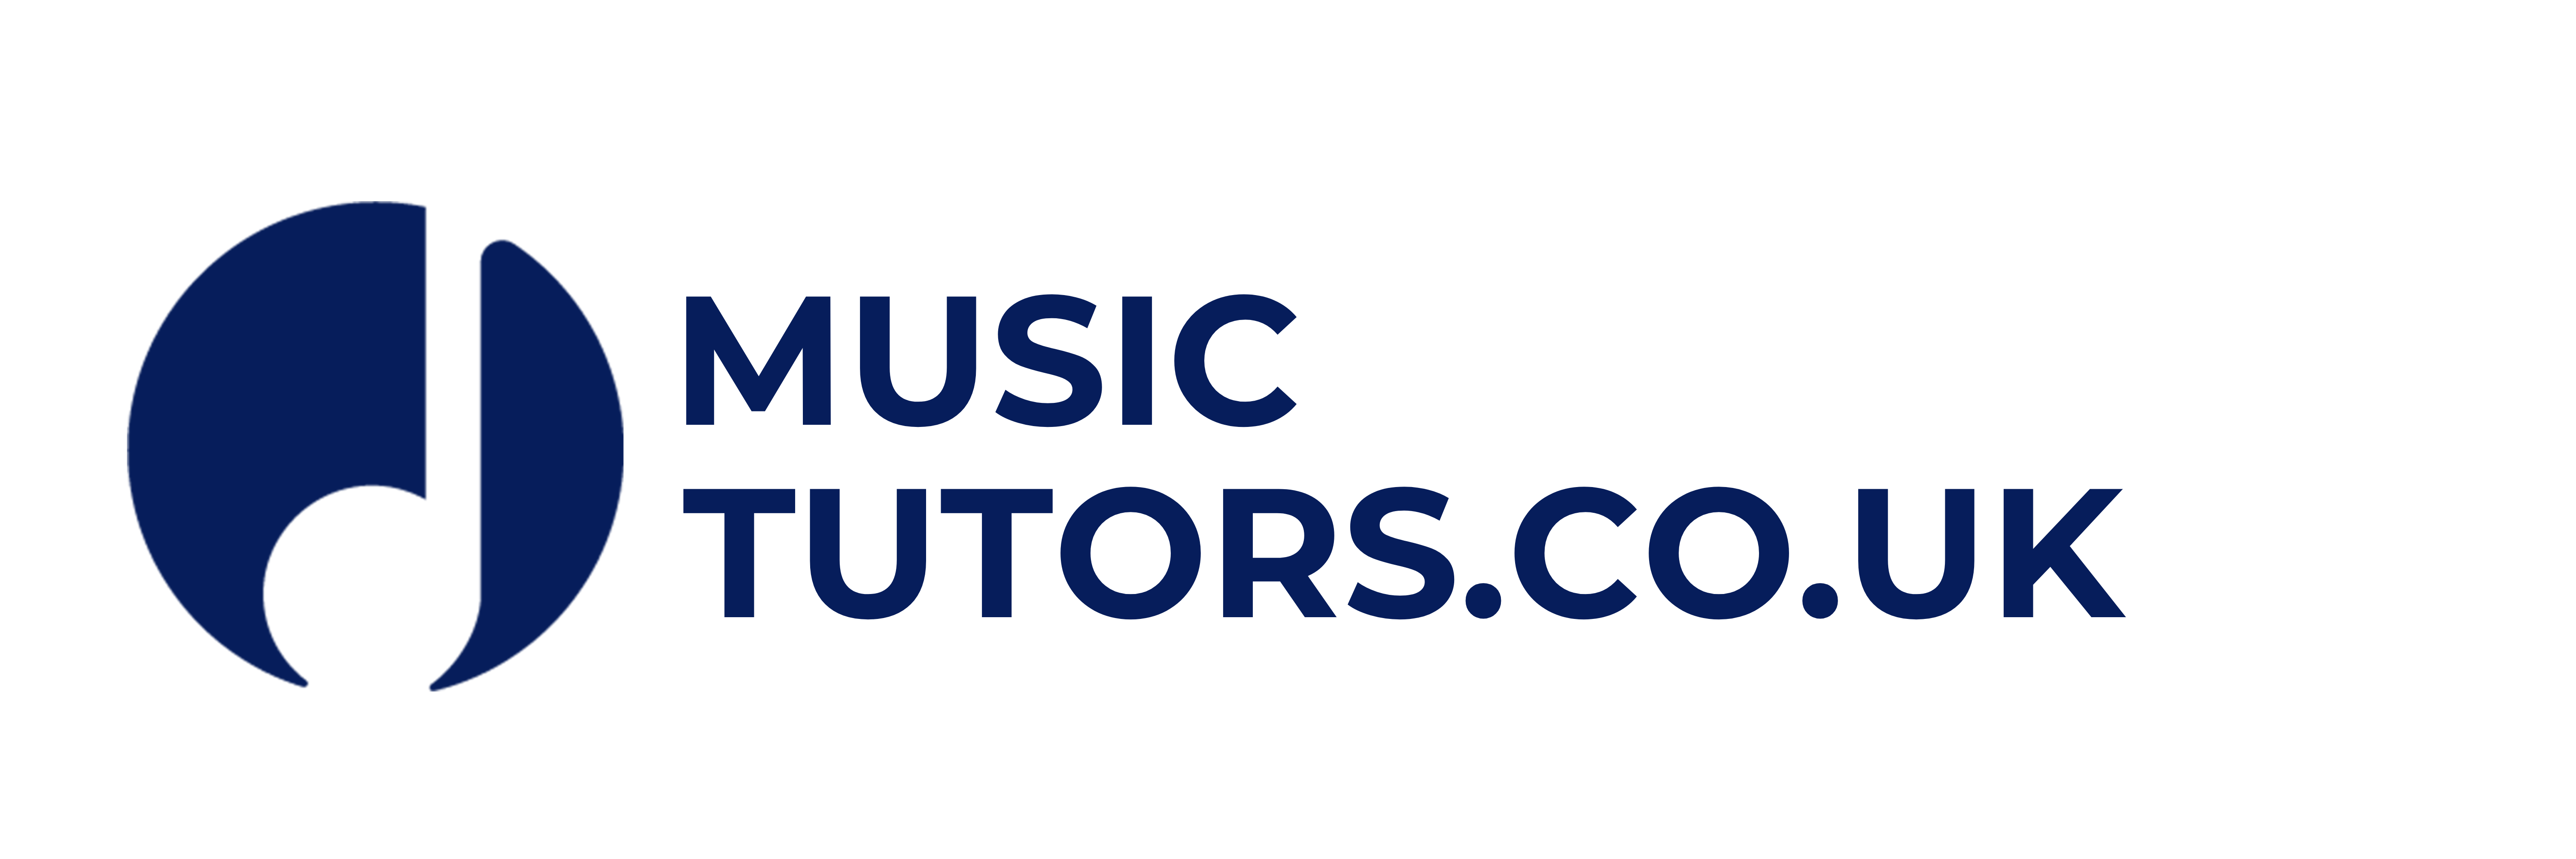 The blog of MusicTutors.co.uk